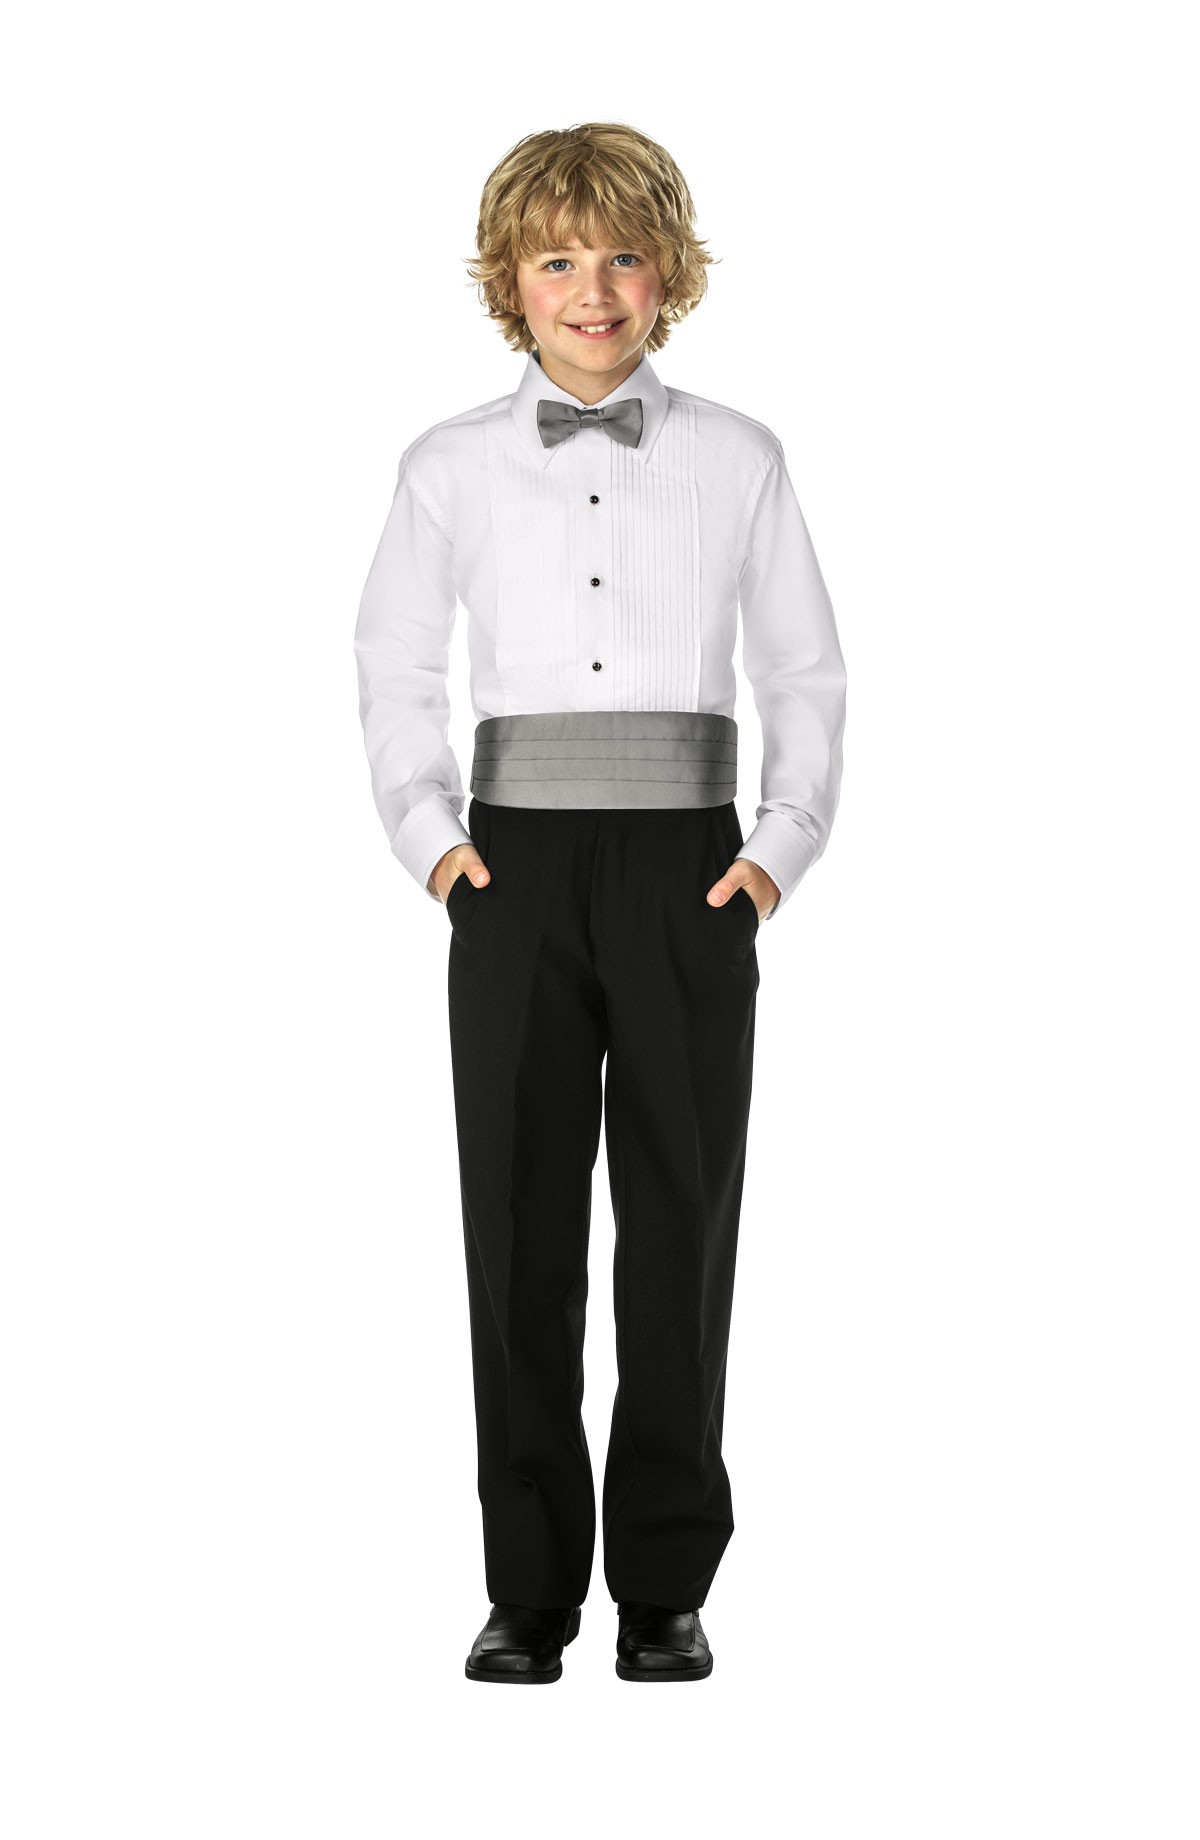 Children's Satin Cummerbund